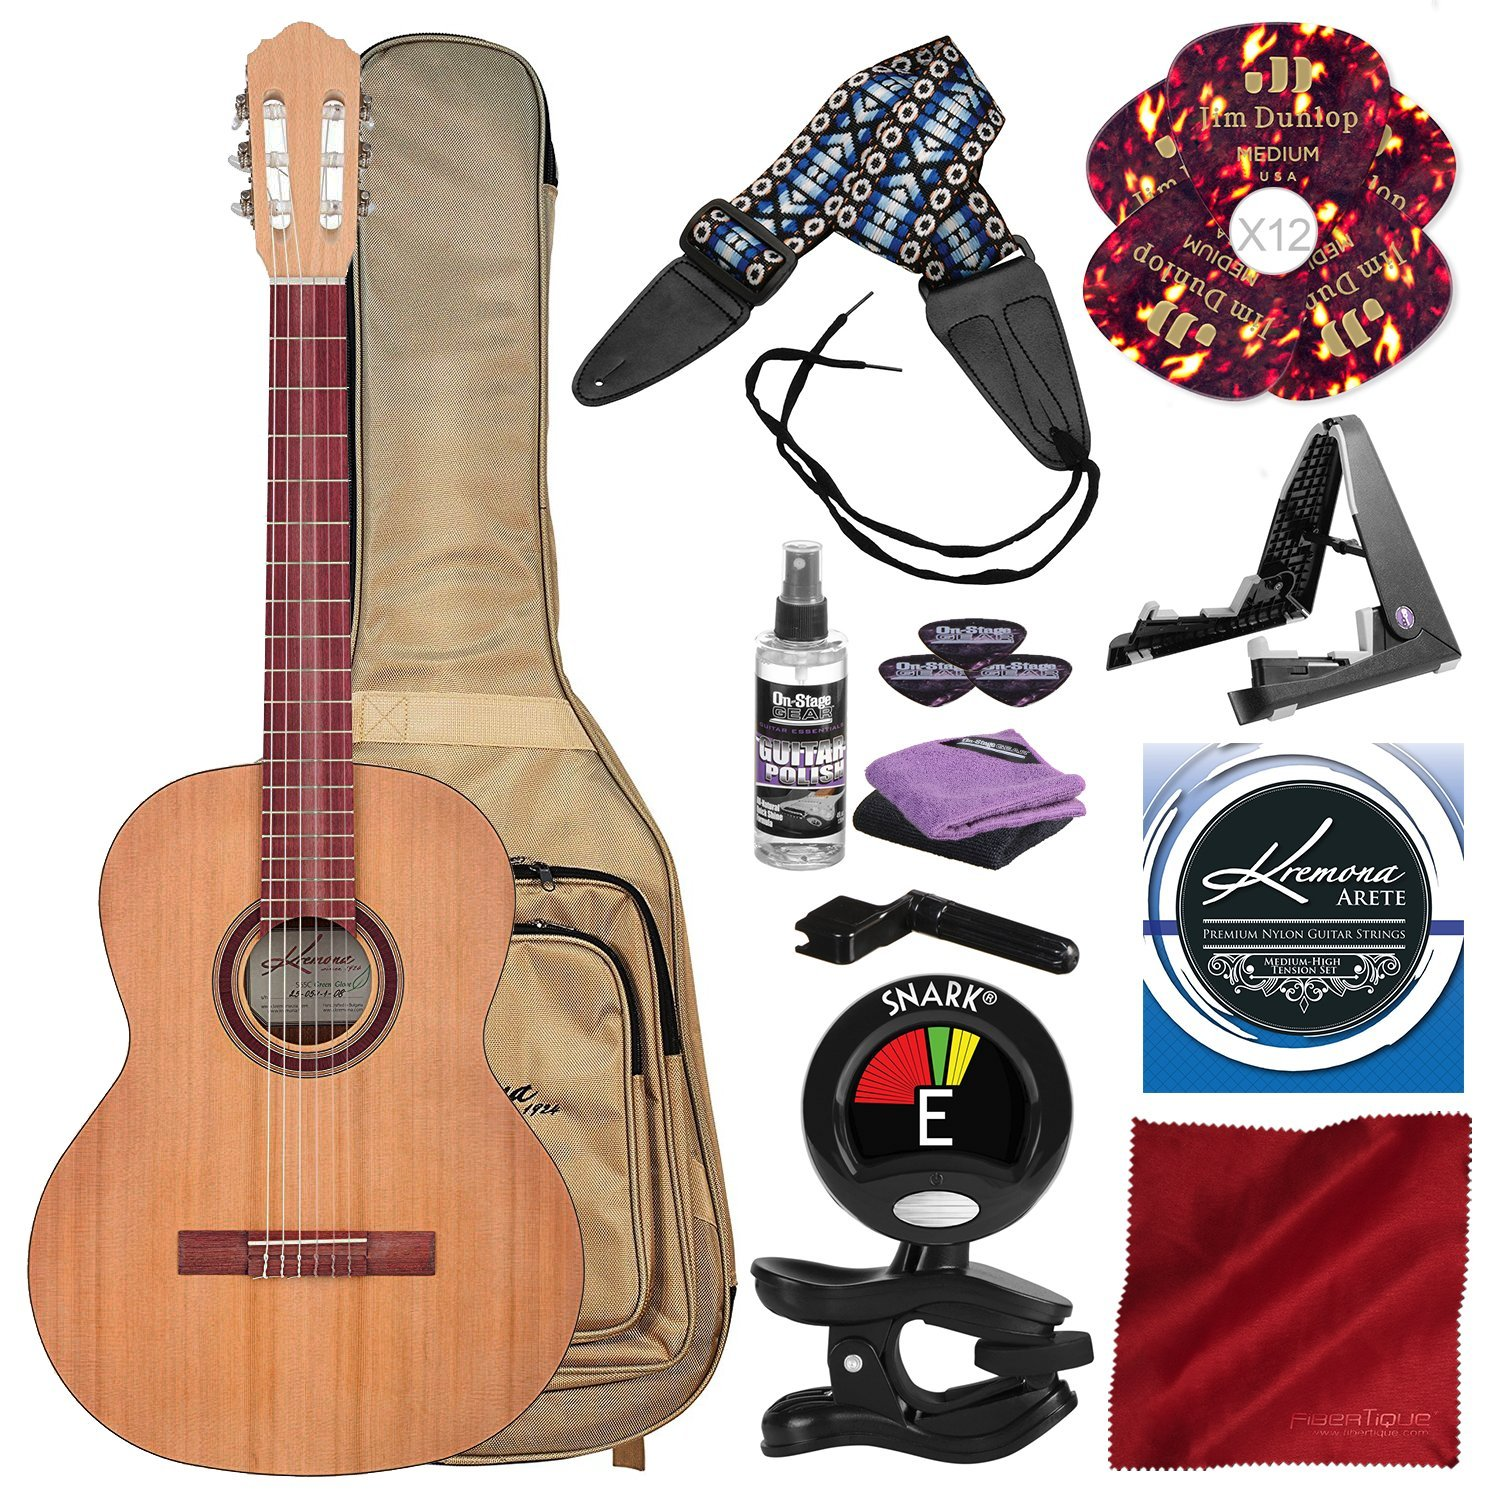 Kremona S65C GG Green Globe Series Nylon String Classical Guitar with Guitar Stand, Pick, Tuner, Cleaning Equipment, and Deluxe Bundle